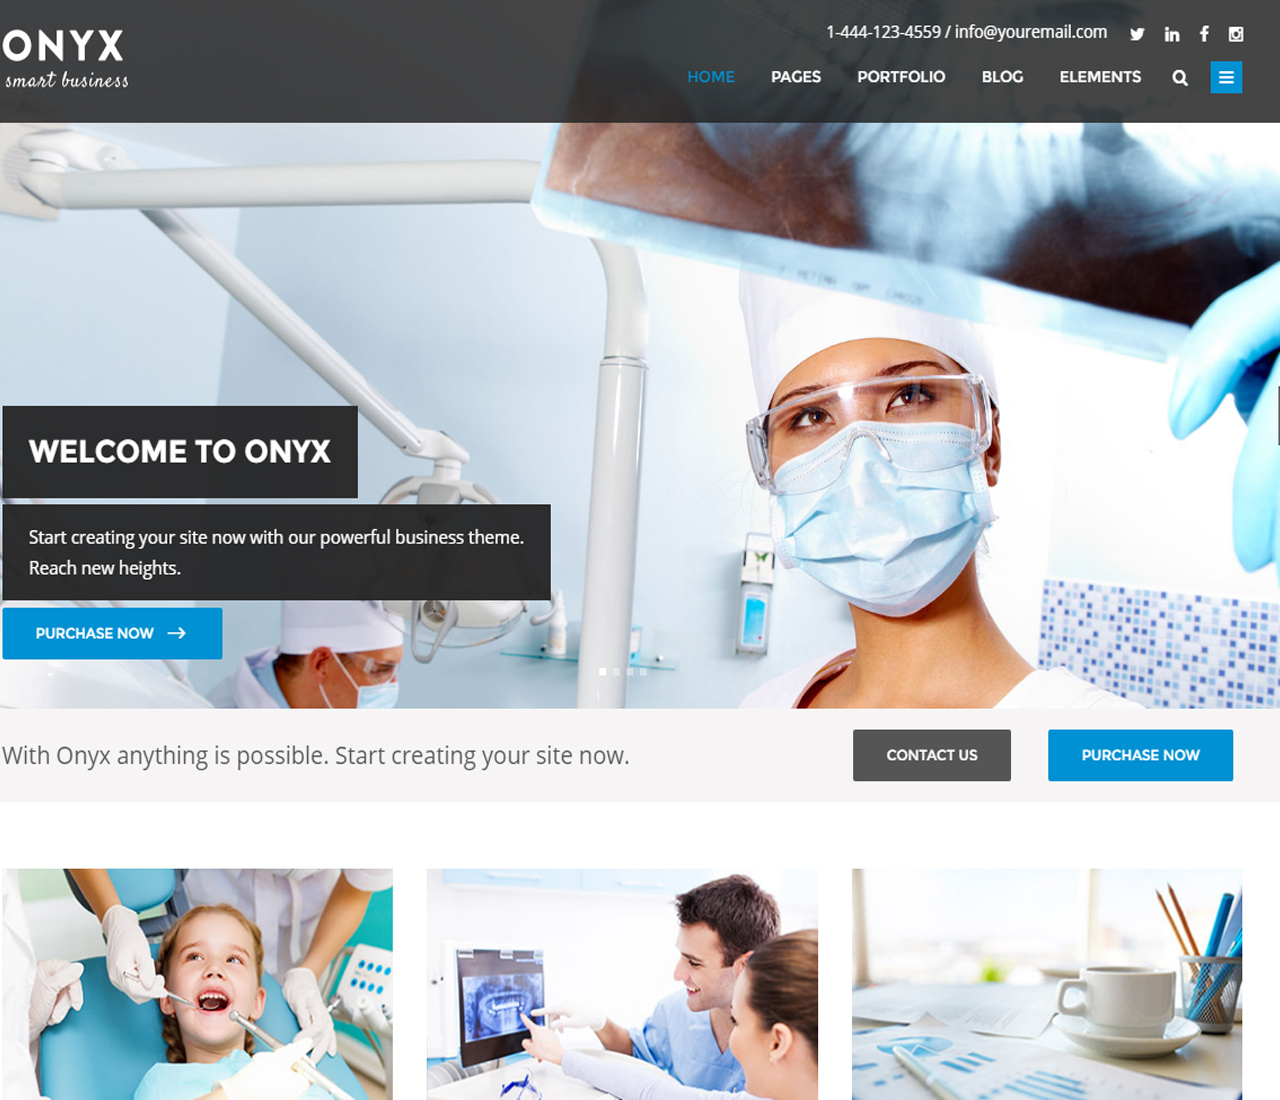 Onyx – A Powerful Multi-Concept Business Theme – 11313269-1